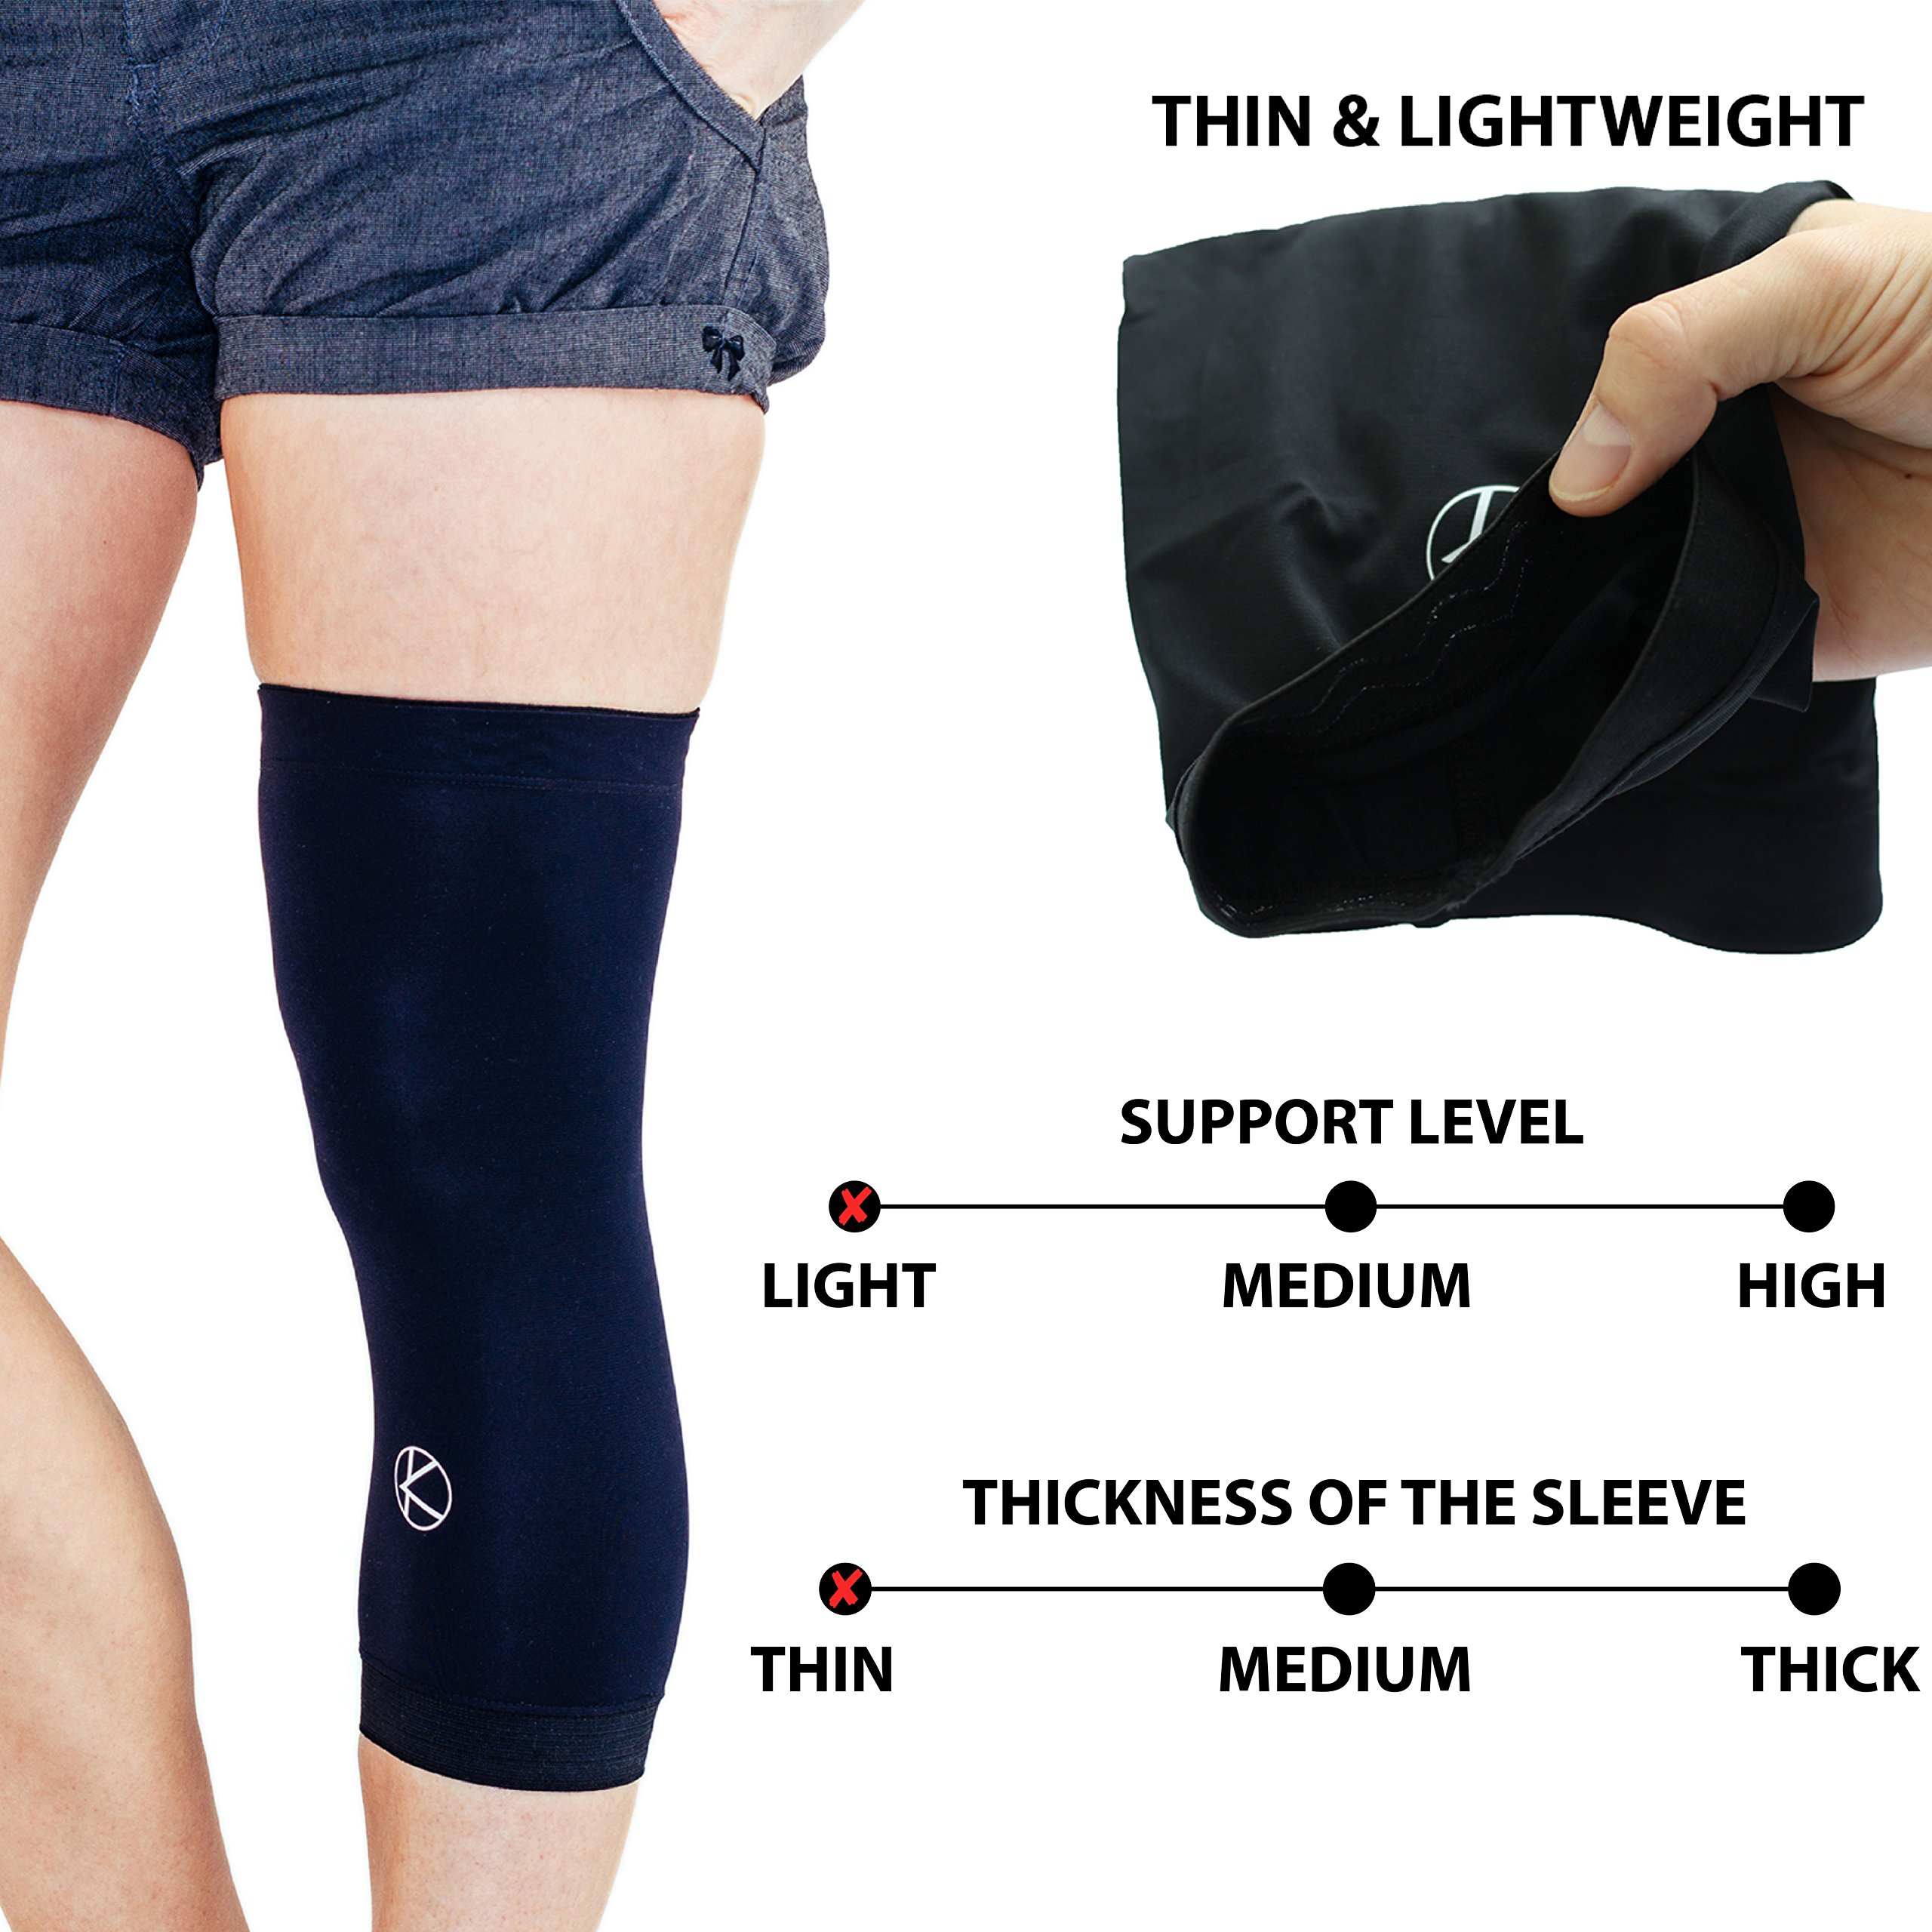 Copper Knee Sleeve Recovery - GUARANTEED LIGHT Support for Arthritis, Running, Basketball, Joint Pain Relief, Muscles, Injury - NON SLIP Lite Compression Copper Knee Brace for Women, Men, Kids (Small)